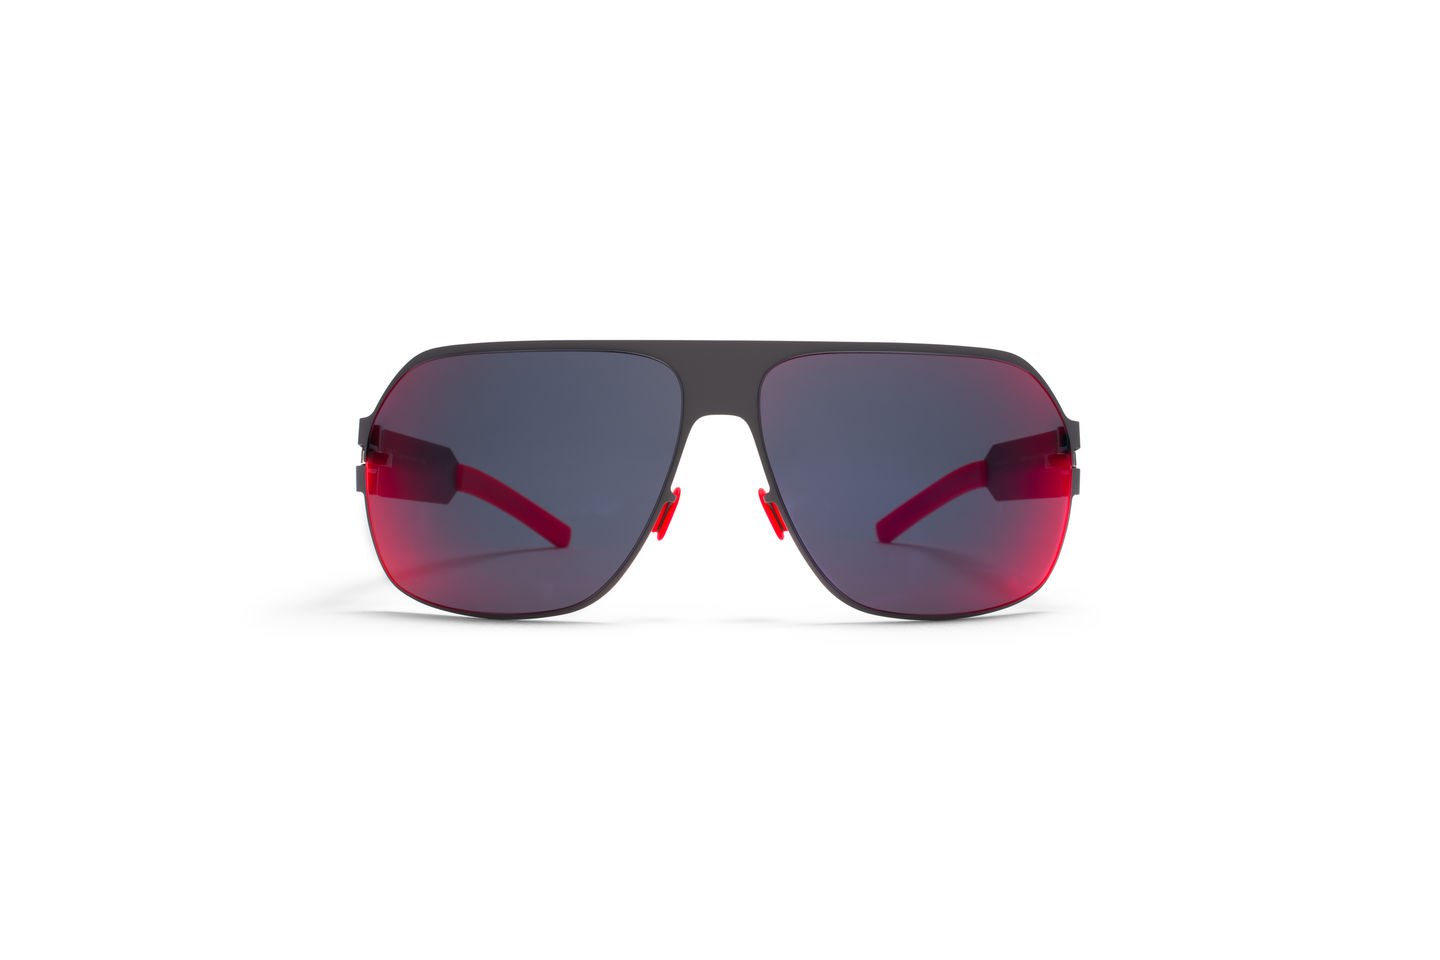 MYKITA & Bernhard Willhelm Sonnenbrille XAVER in MYKITA JOURNALs  Tropical Edit